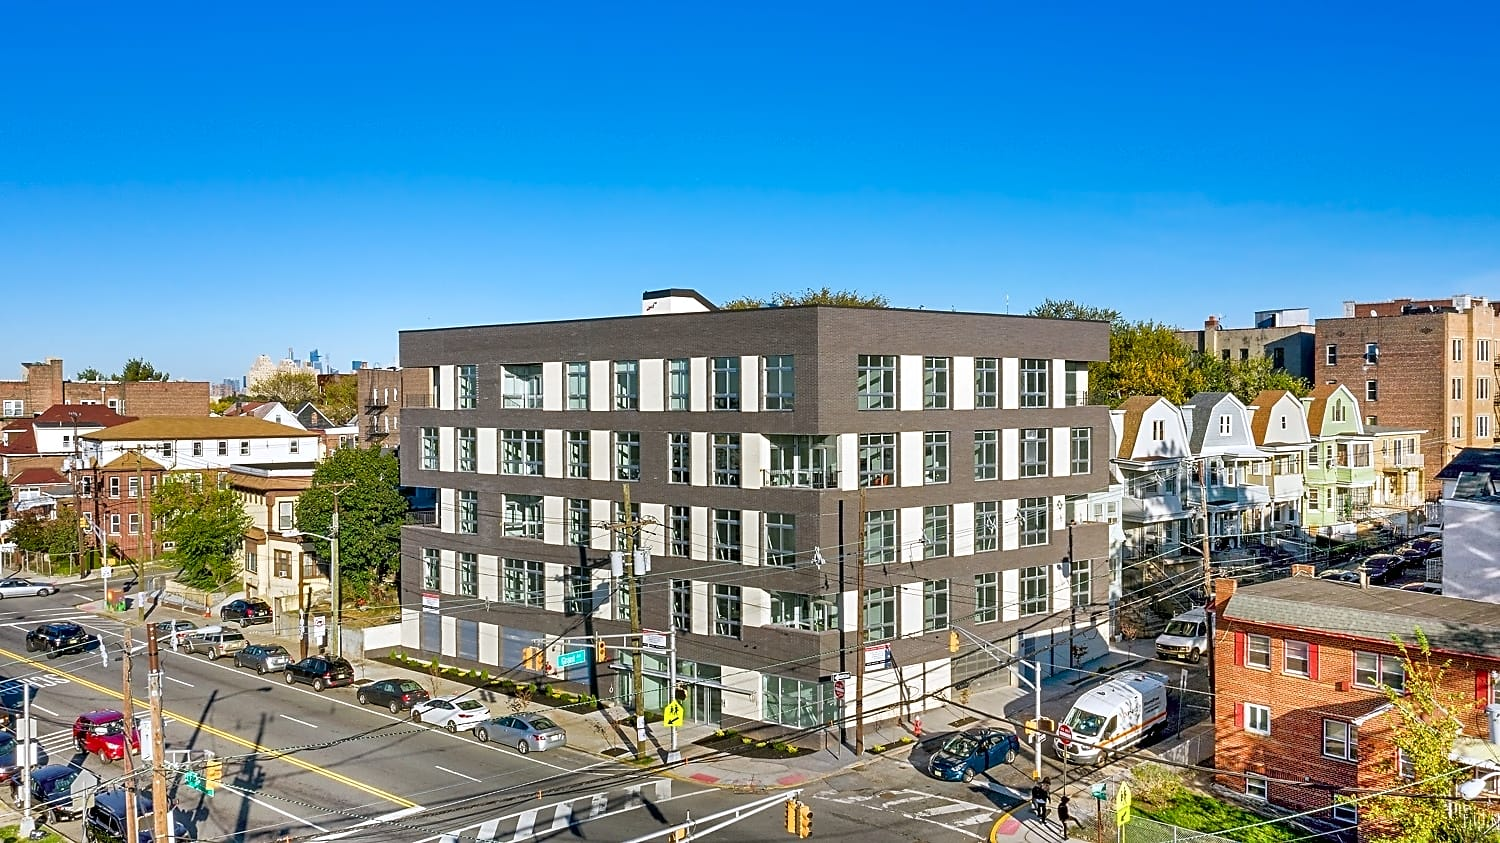 Apartments Near NJCU 2130 JFK Apartments for New Jersey City University Students in Jersey City, NJ